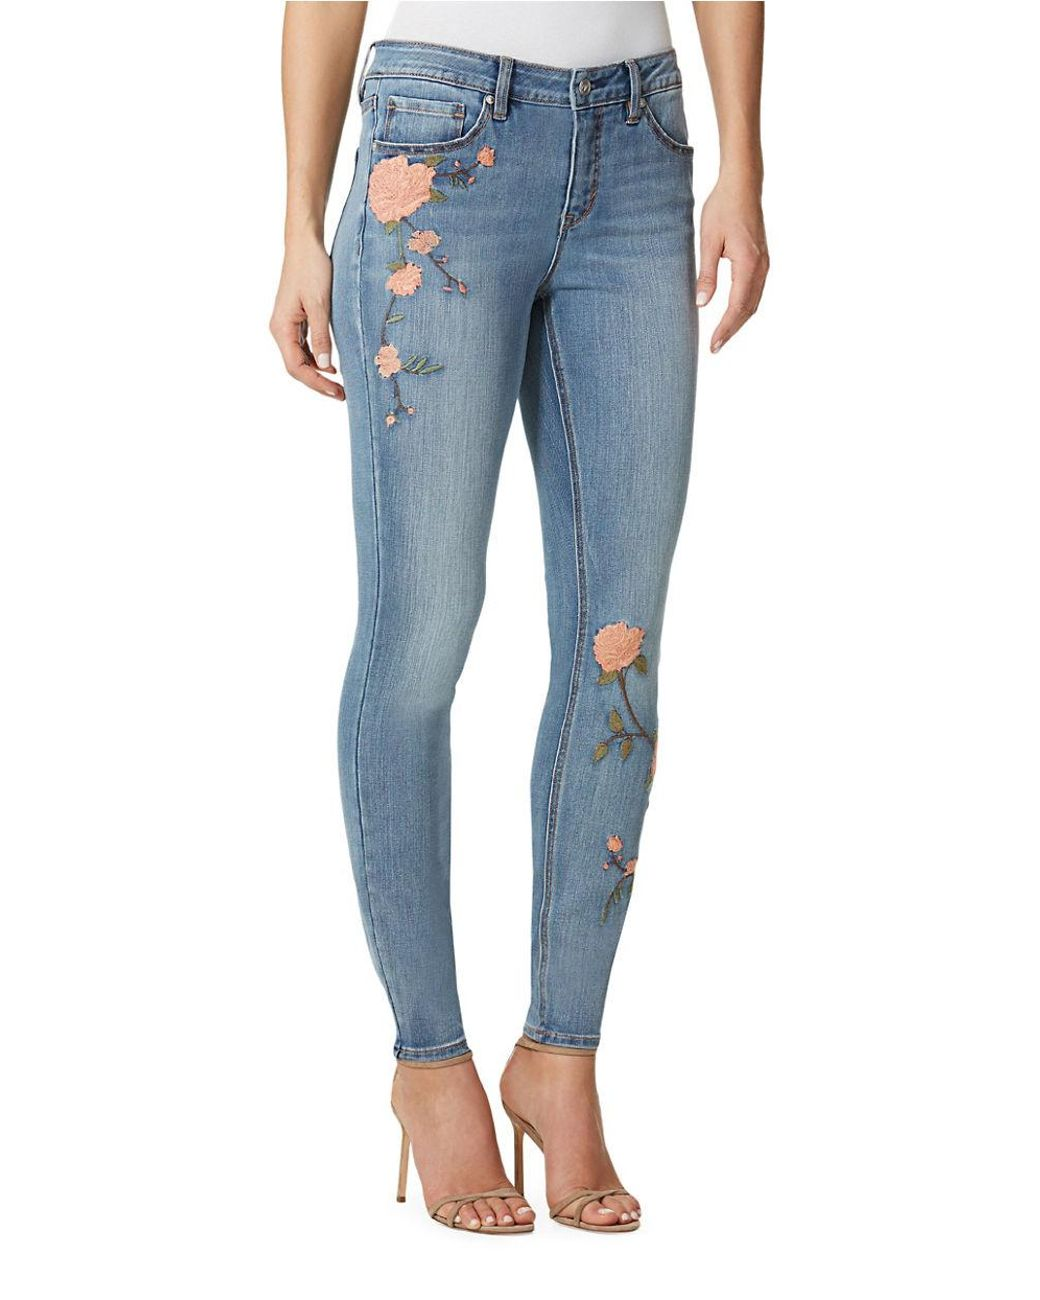 Lord & Taylor; $99.50